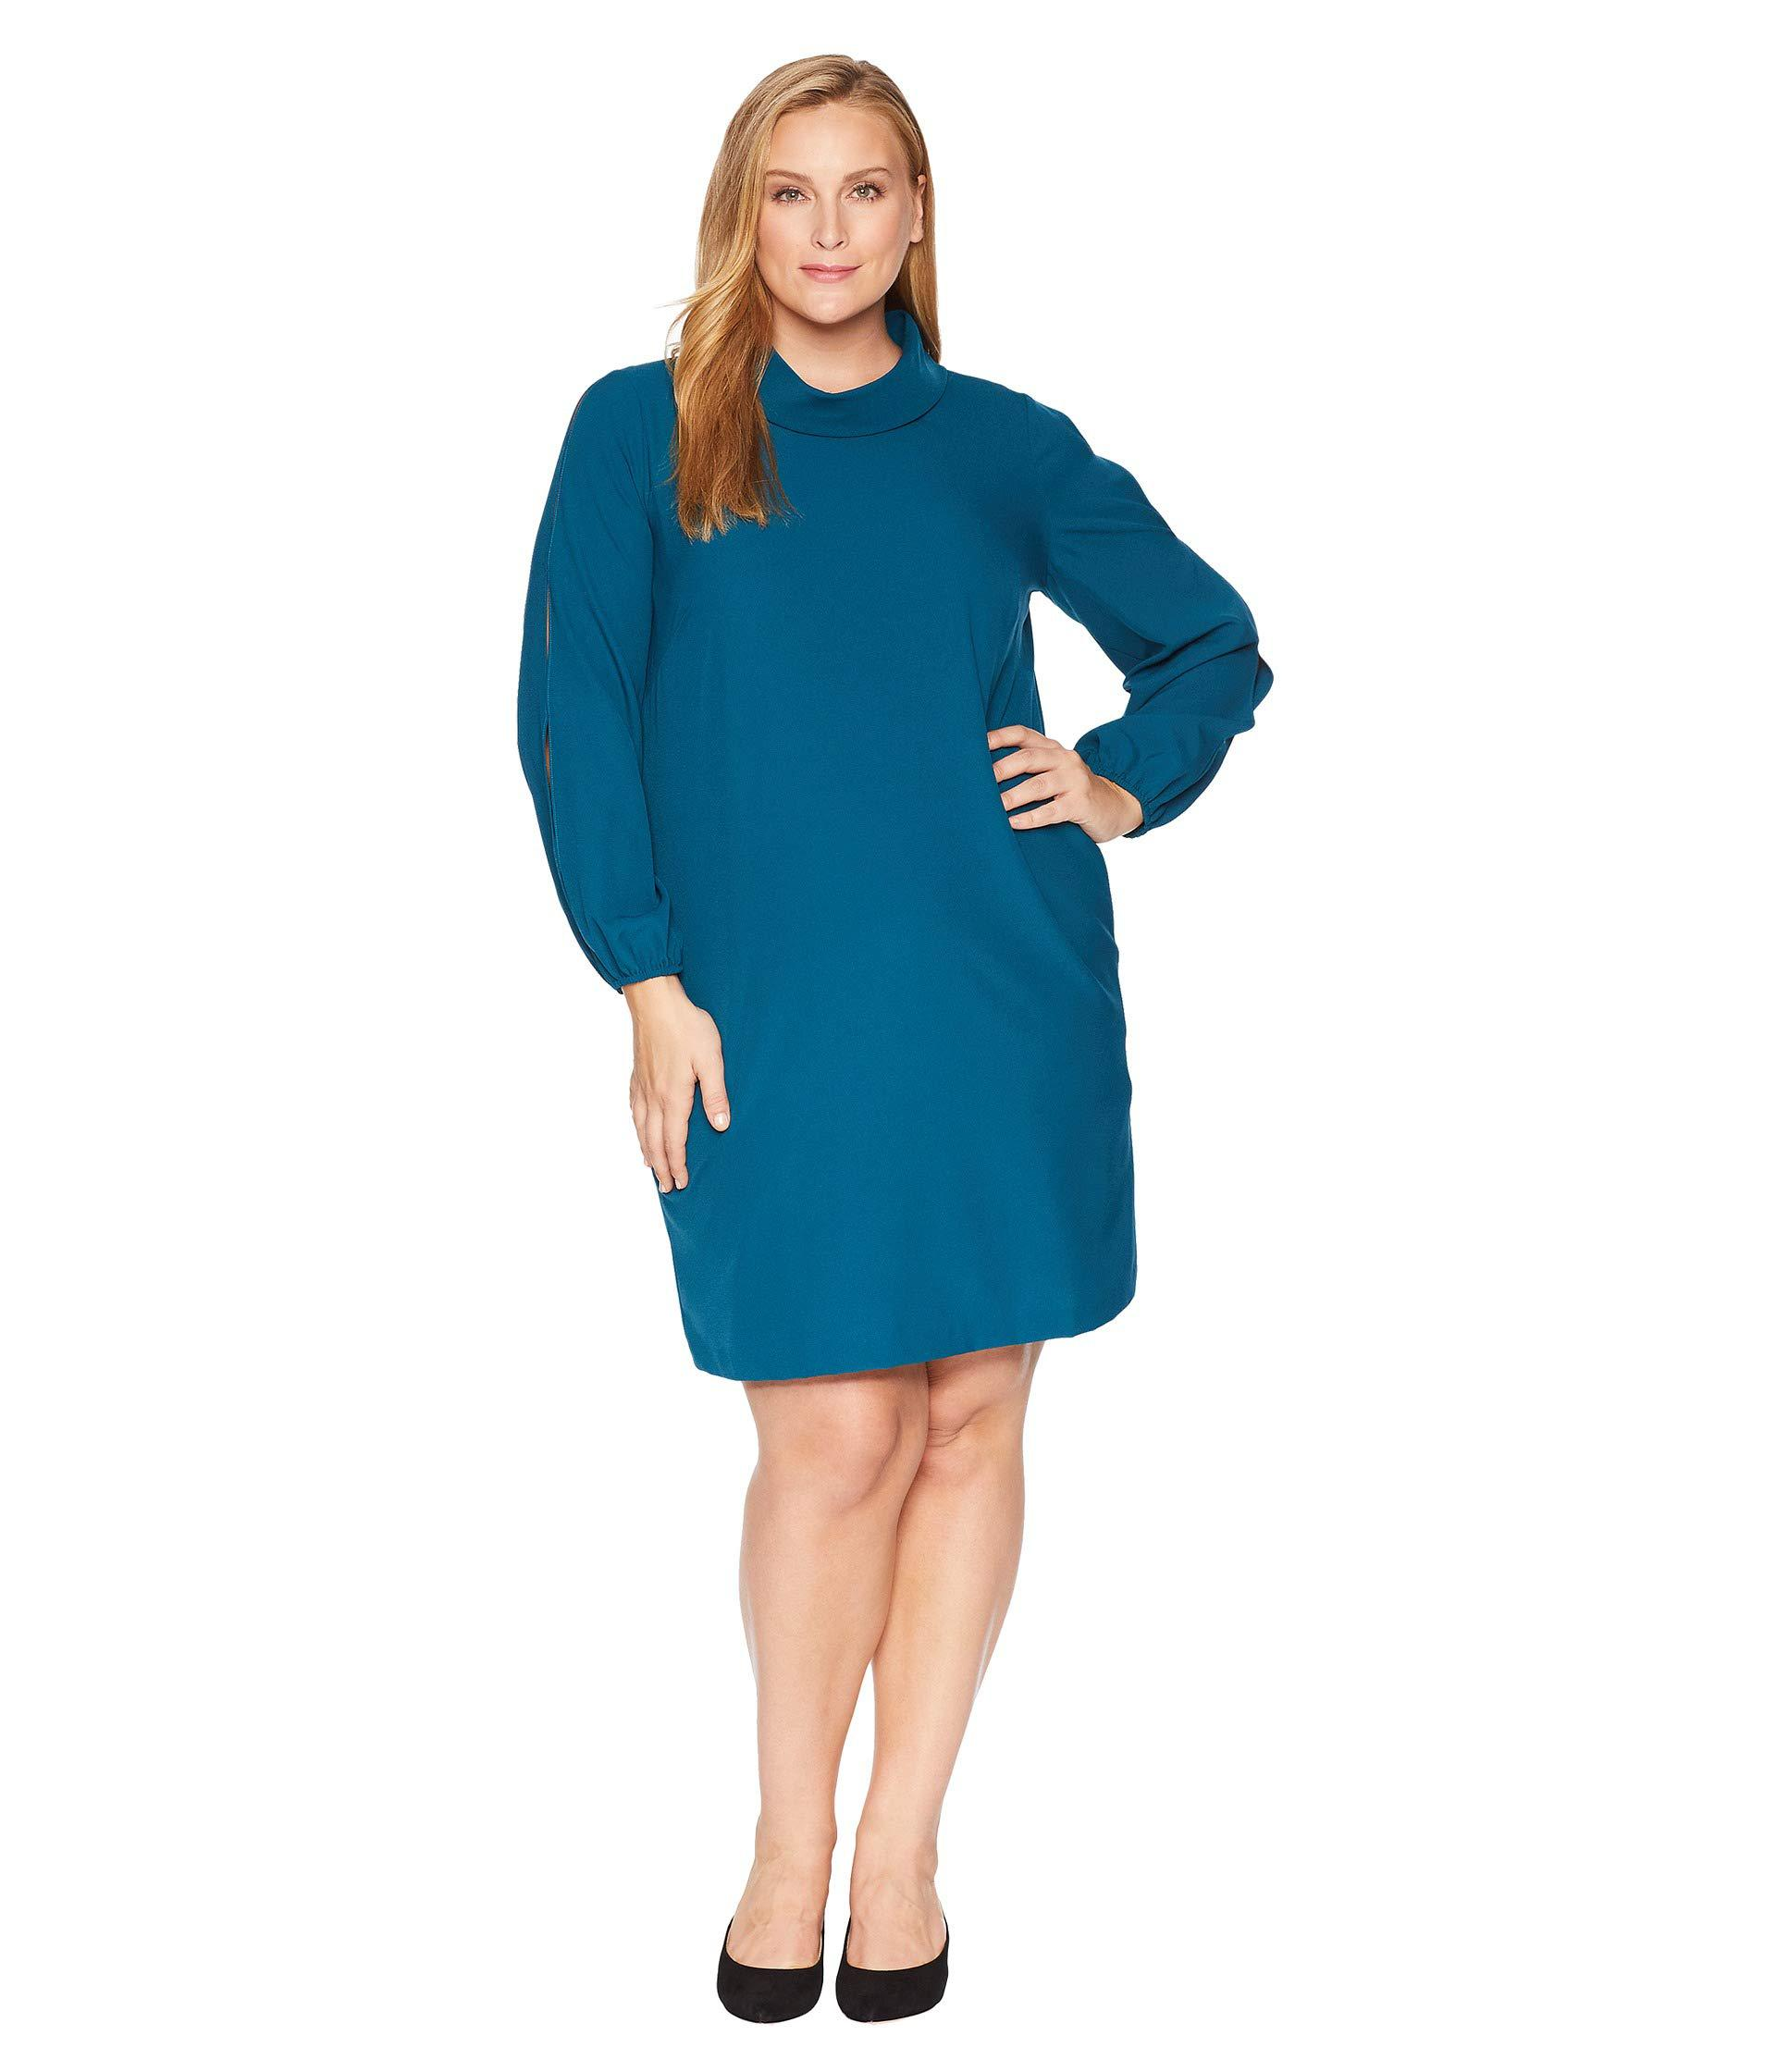 550e4a1a Lyst - Tahari Plus Size Long Split Sleeve Crepe Shift With Roll ...